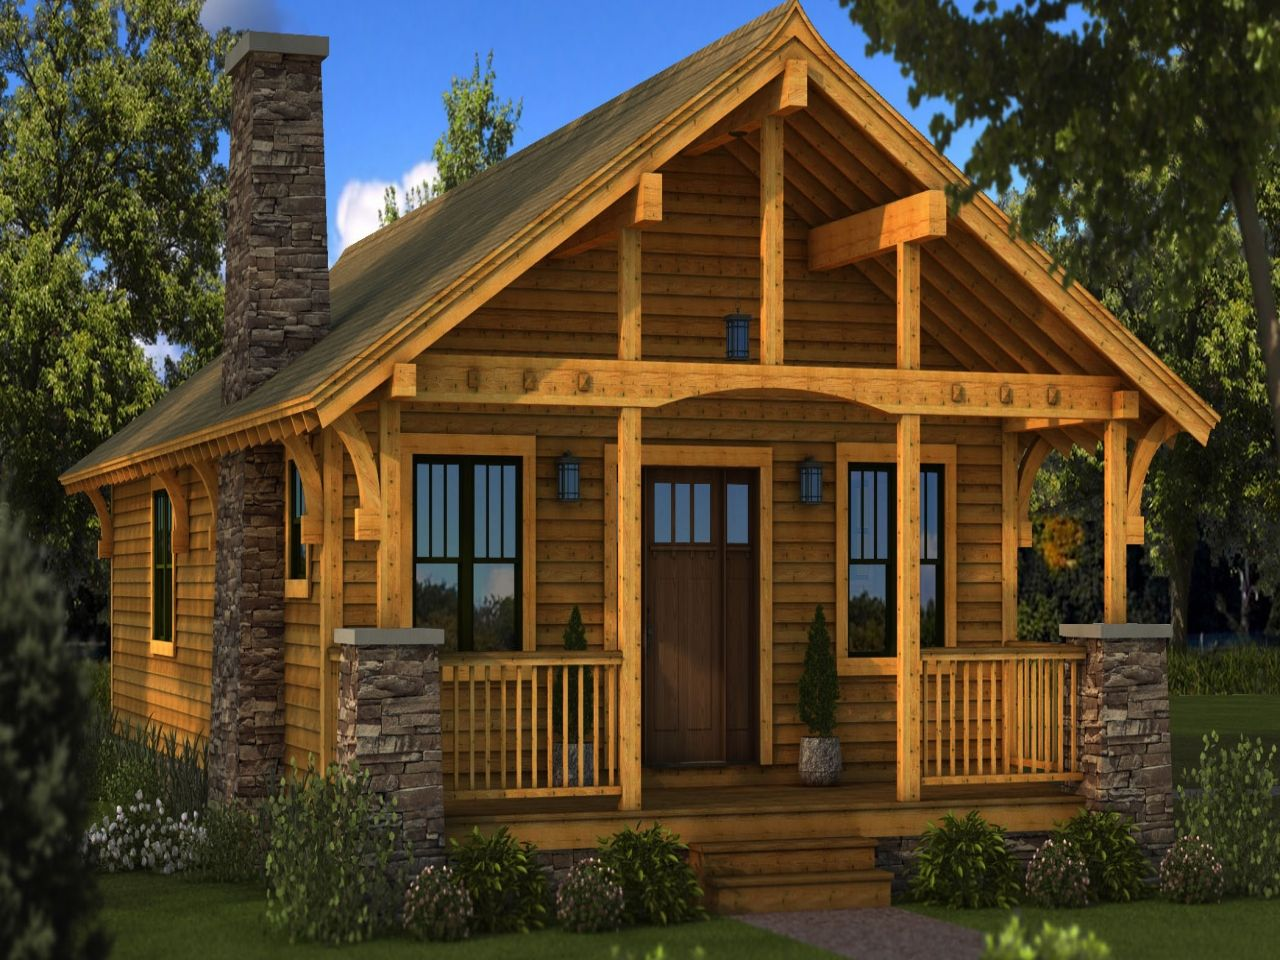 Small log cabin homes plans one story cabin plans for Lodge home designs